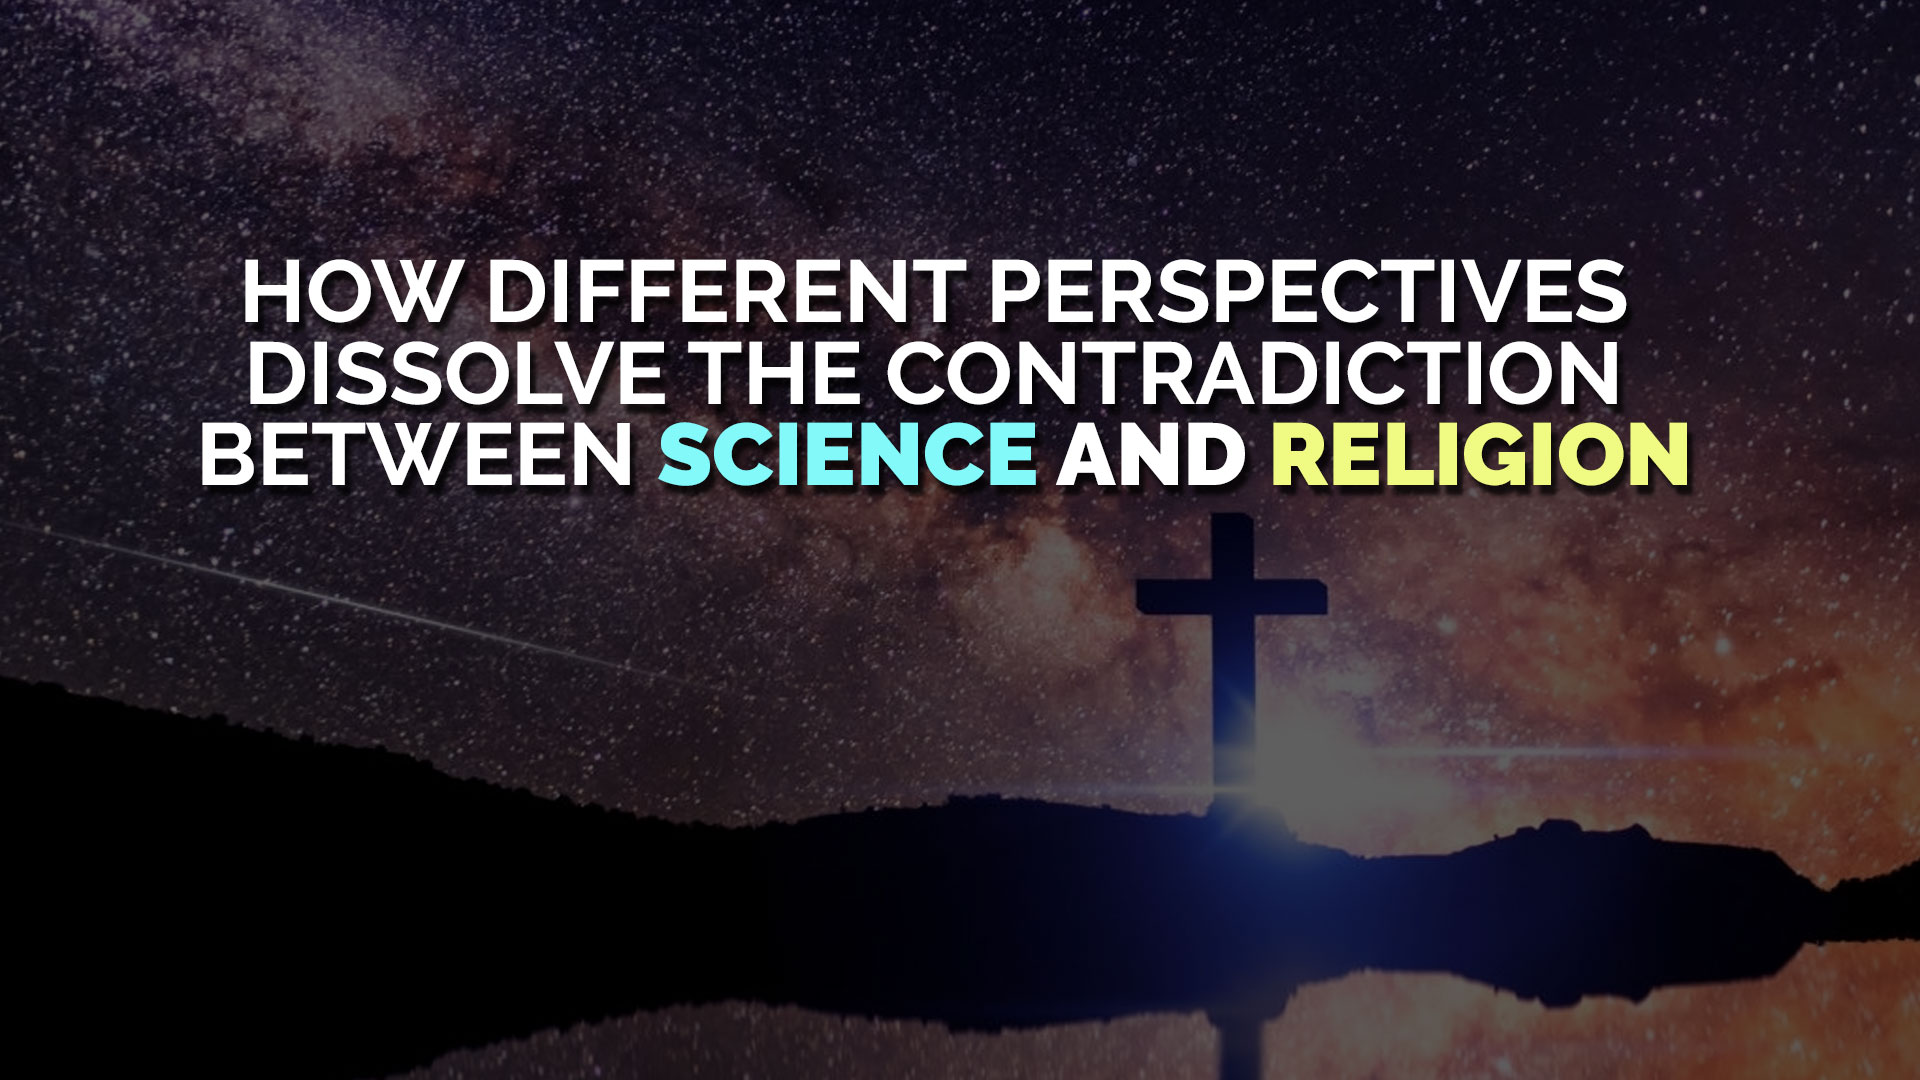 How Different Perspectives Dissolve the Contradiction Between Religion and Science